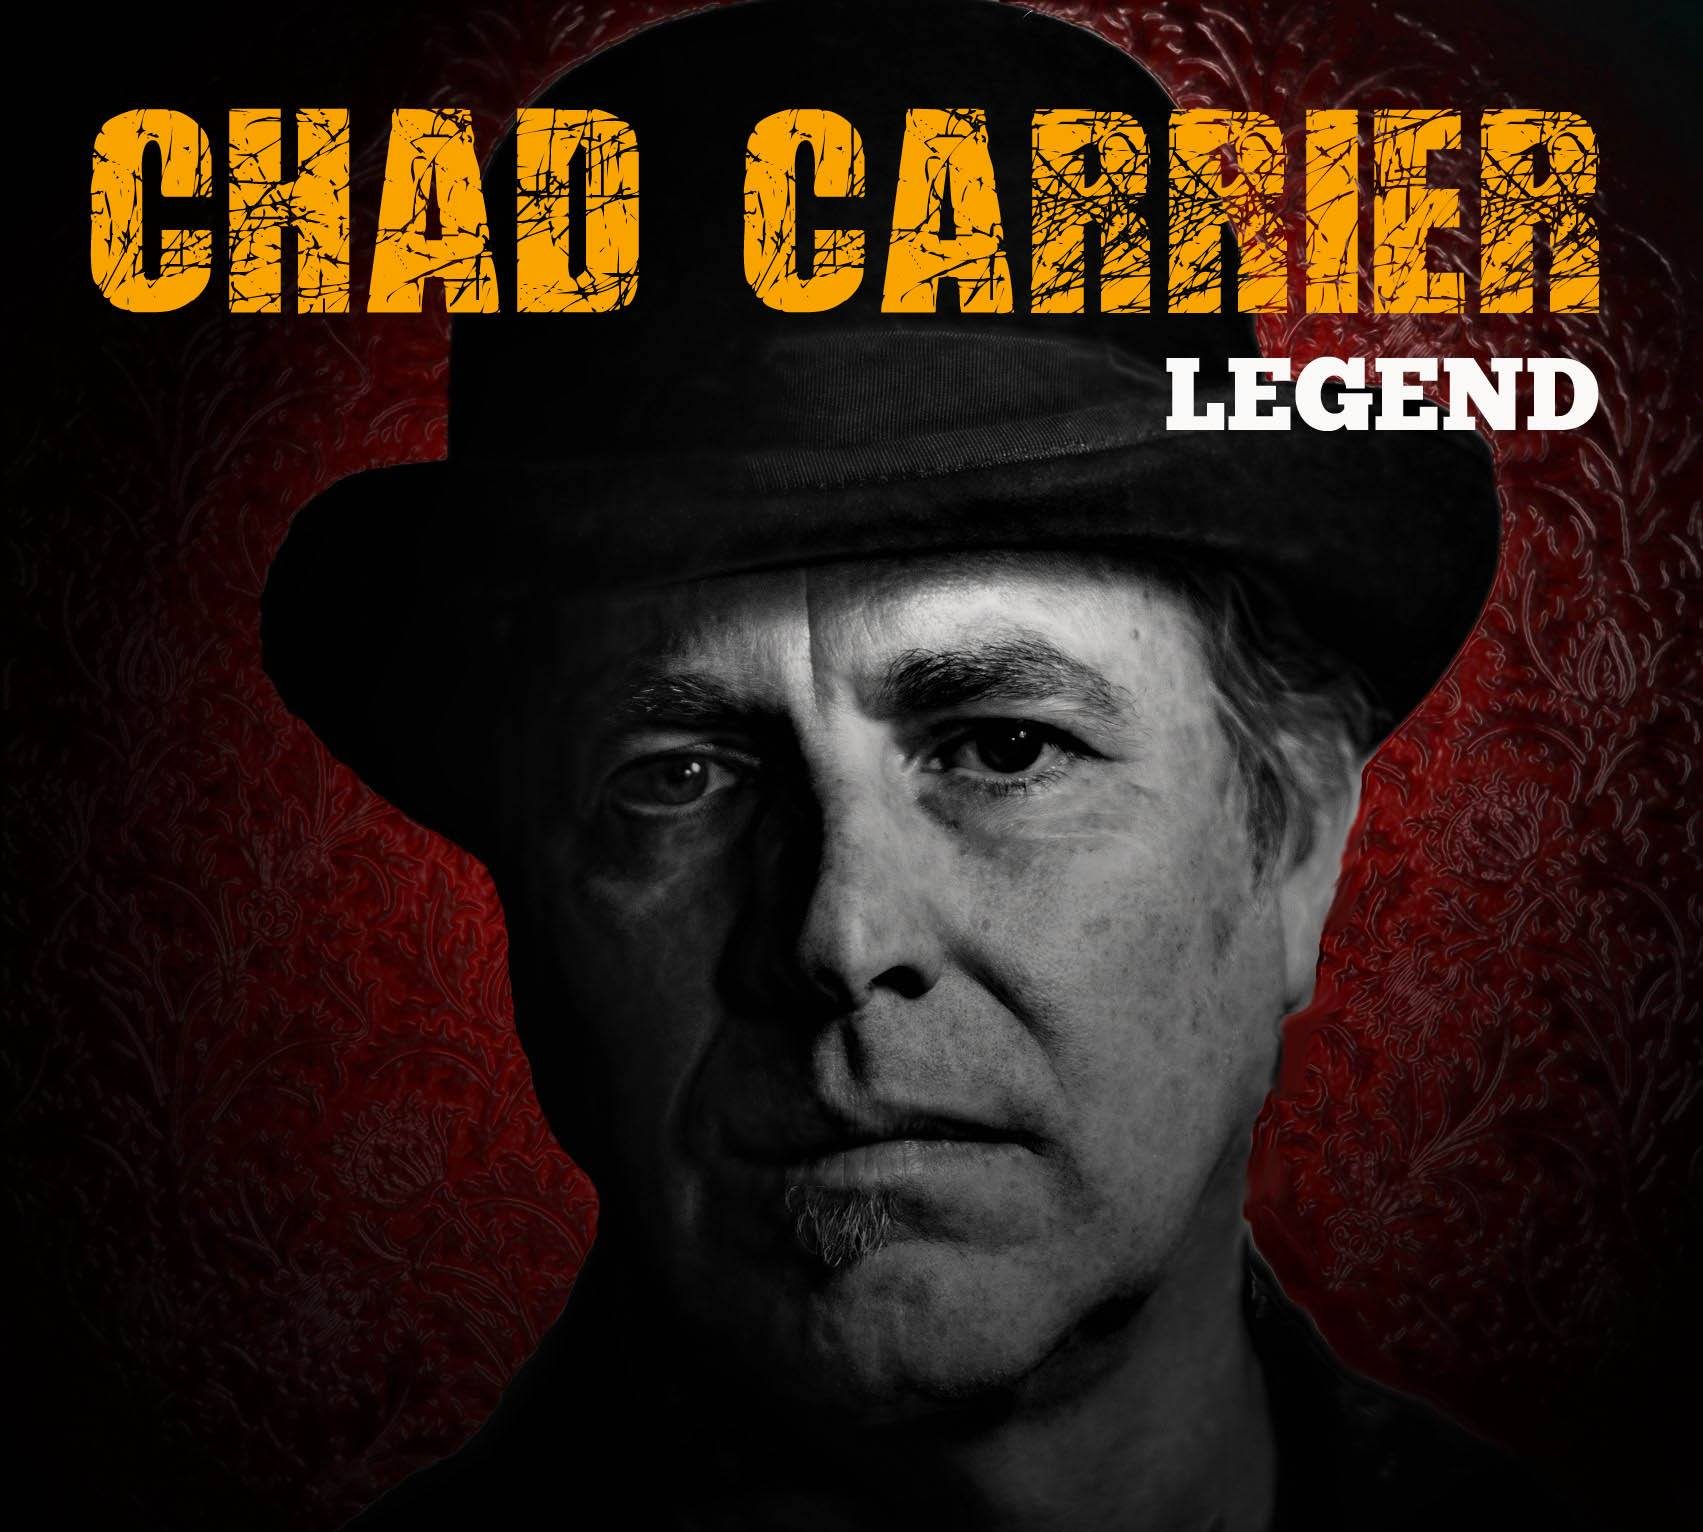 Chad Carrier Delivers With New Album 'Legend'